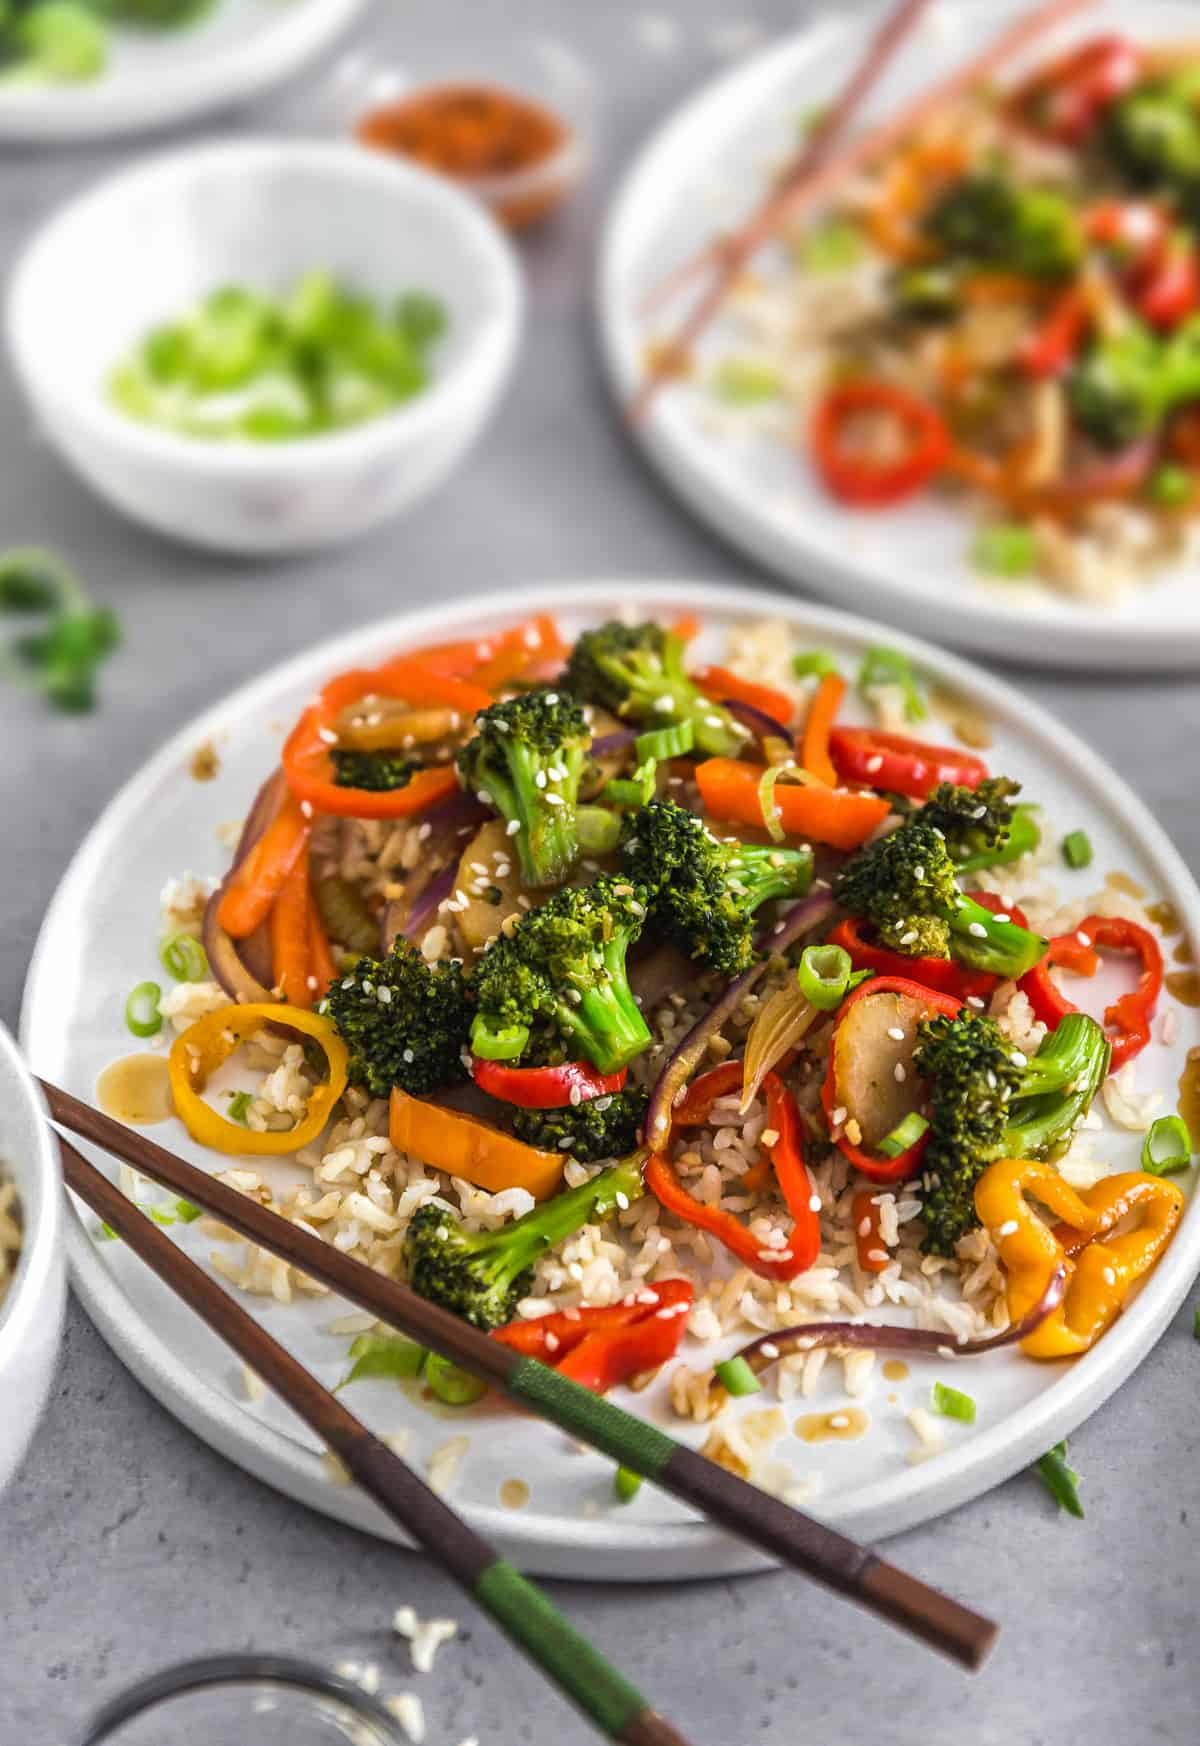 Asian Veggie Stir Fry, plant based, vegan, vegetarian, whole food plant based, gluten free, recipe, wfpb, healthy, healthy vegan, oil free, no refined sugar, no oil, refined sugar free, dairy free, veggies, vegetables, stir fry, dinner, rice, Asian recipes, menu, plant based menu, vegan menu, weekly menu, meal plan, vegan meal plan, plant based meal plan